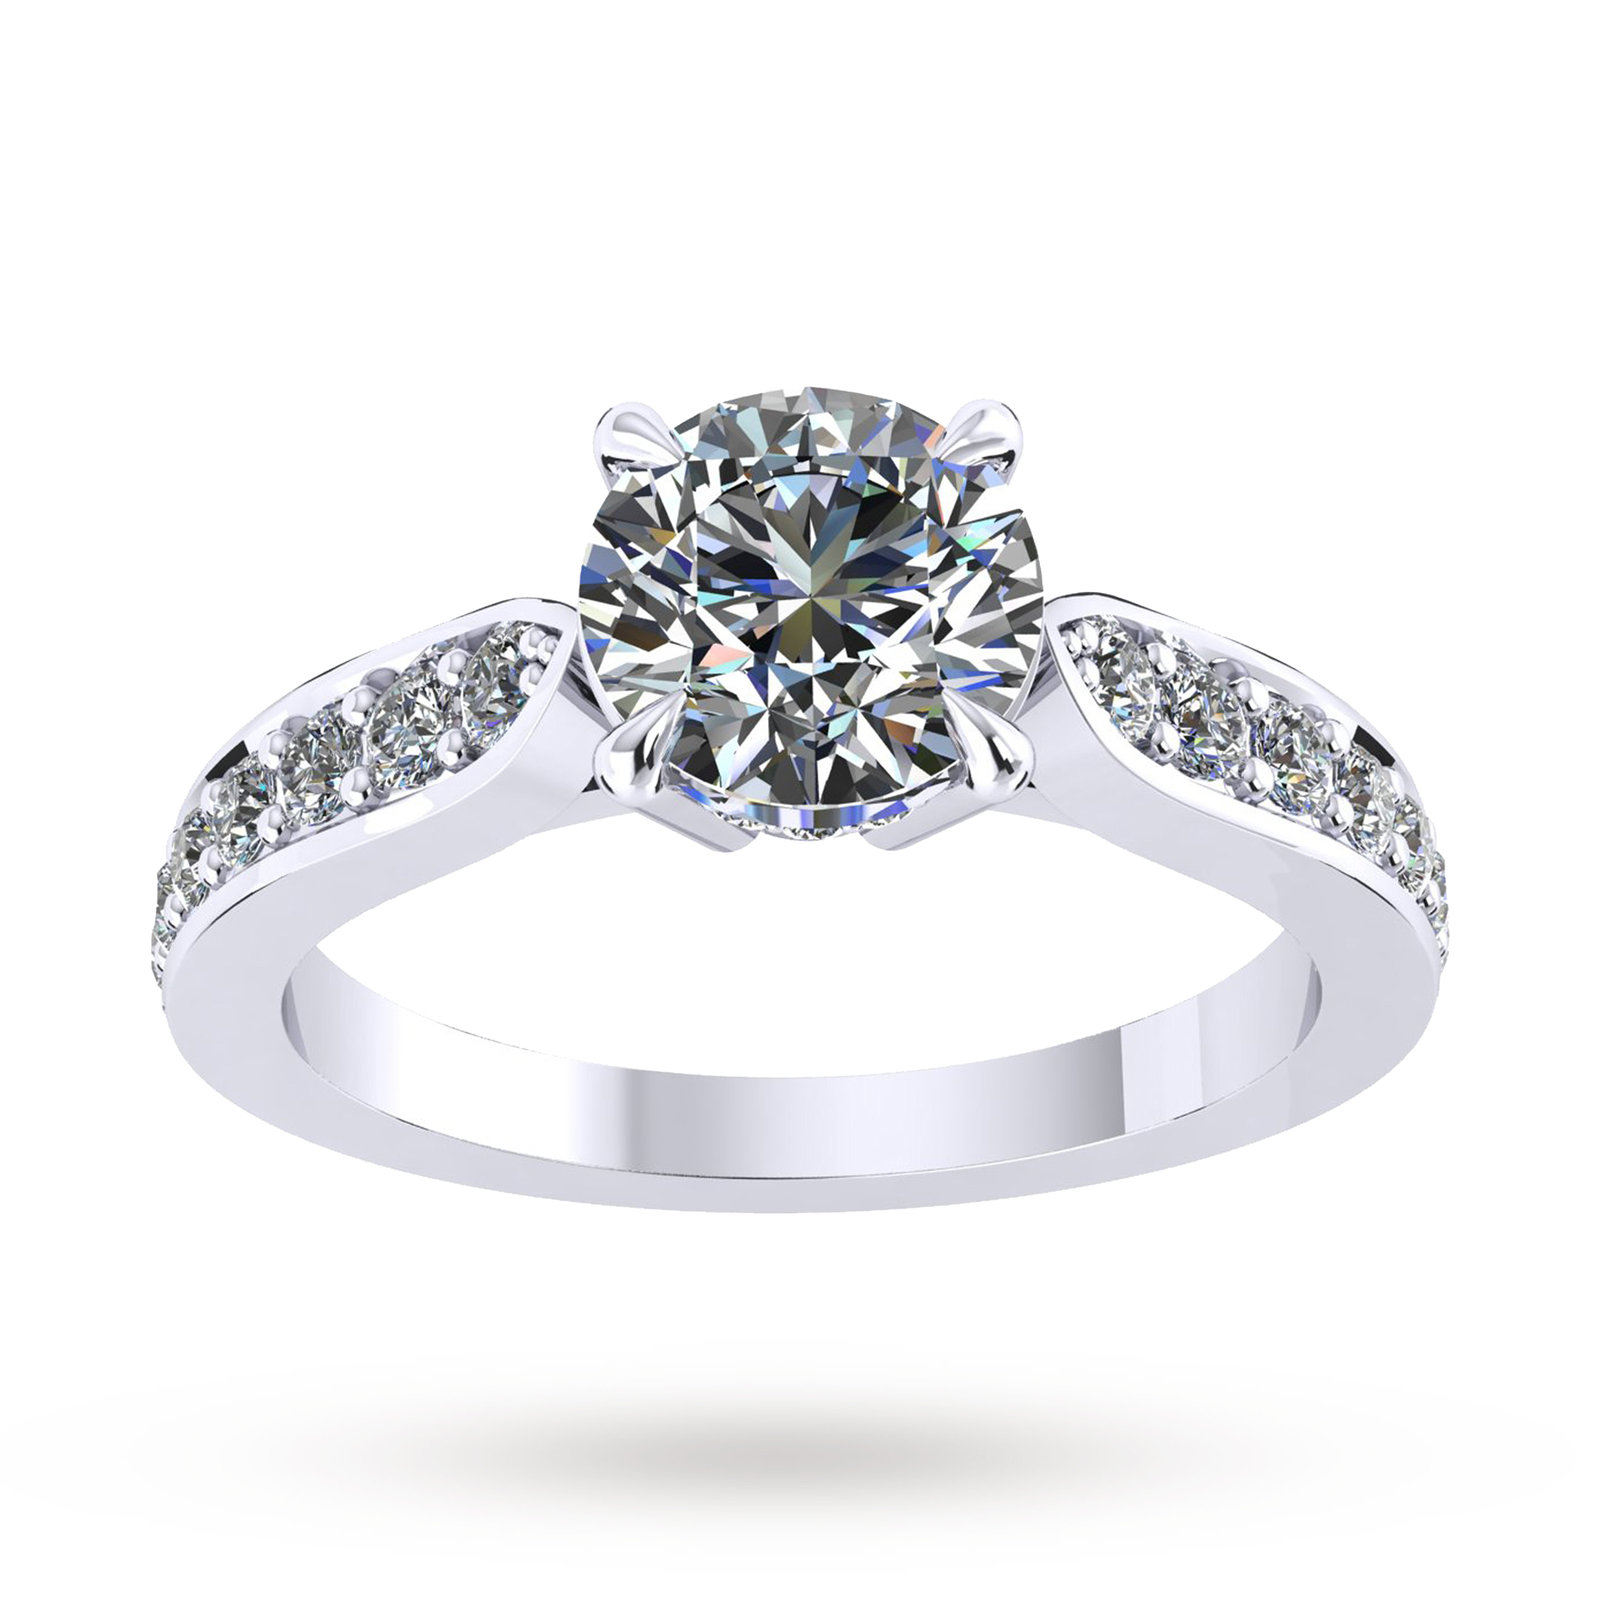 Boscobel Engagement Ring With Diamond Band 0.42 Carat Total Weight - Ring Size J